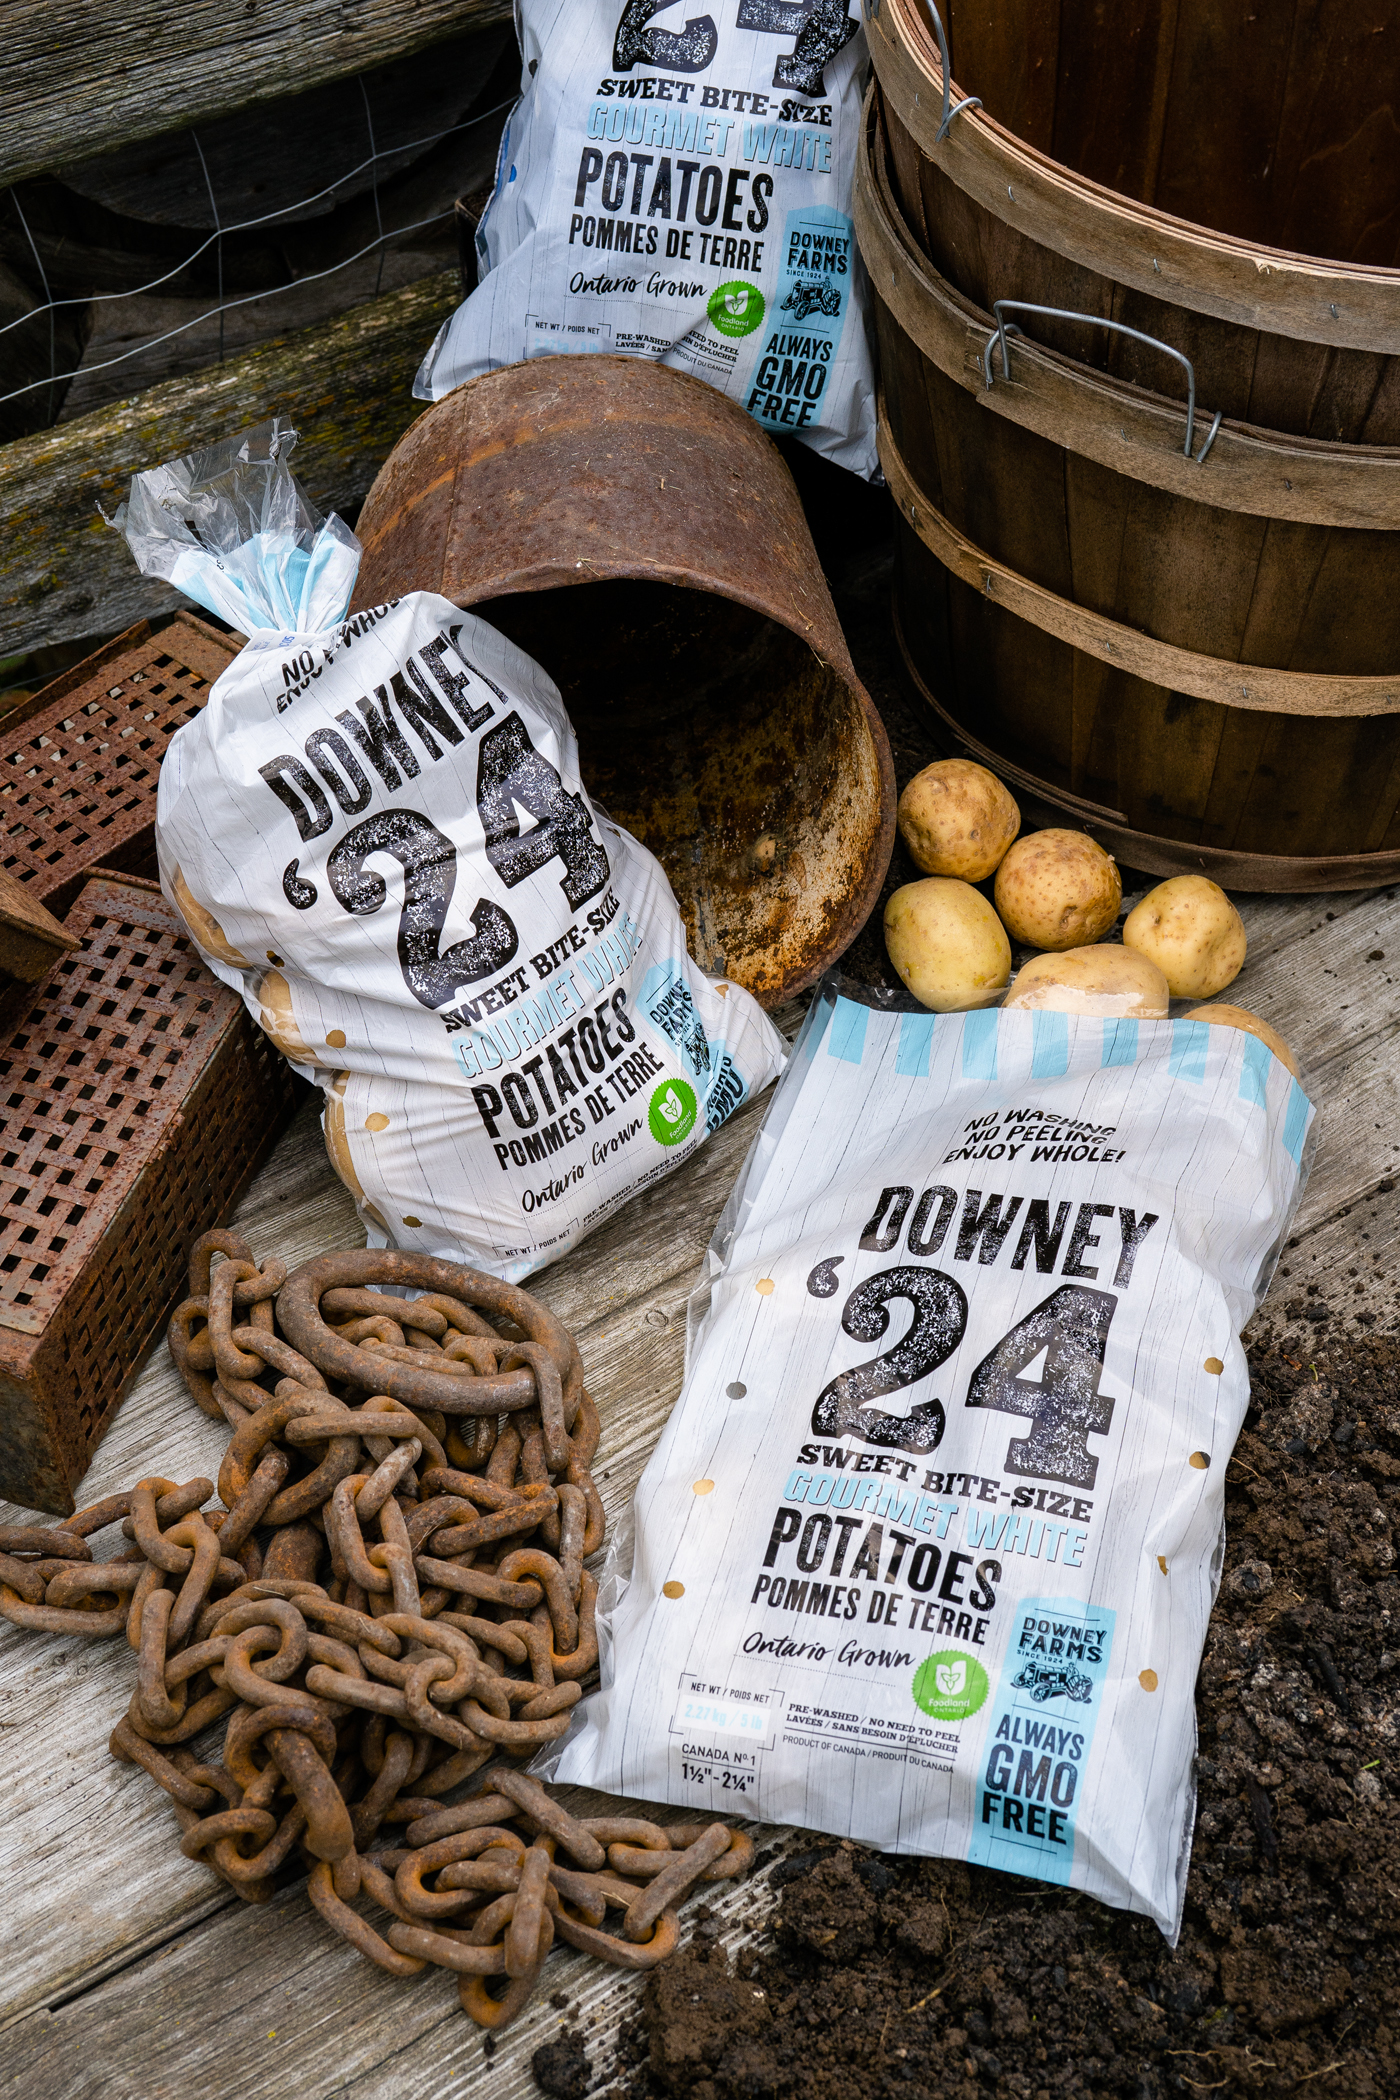 Package design for Canadian gourmet organic potato brand Downey Farms Potatoes.